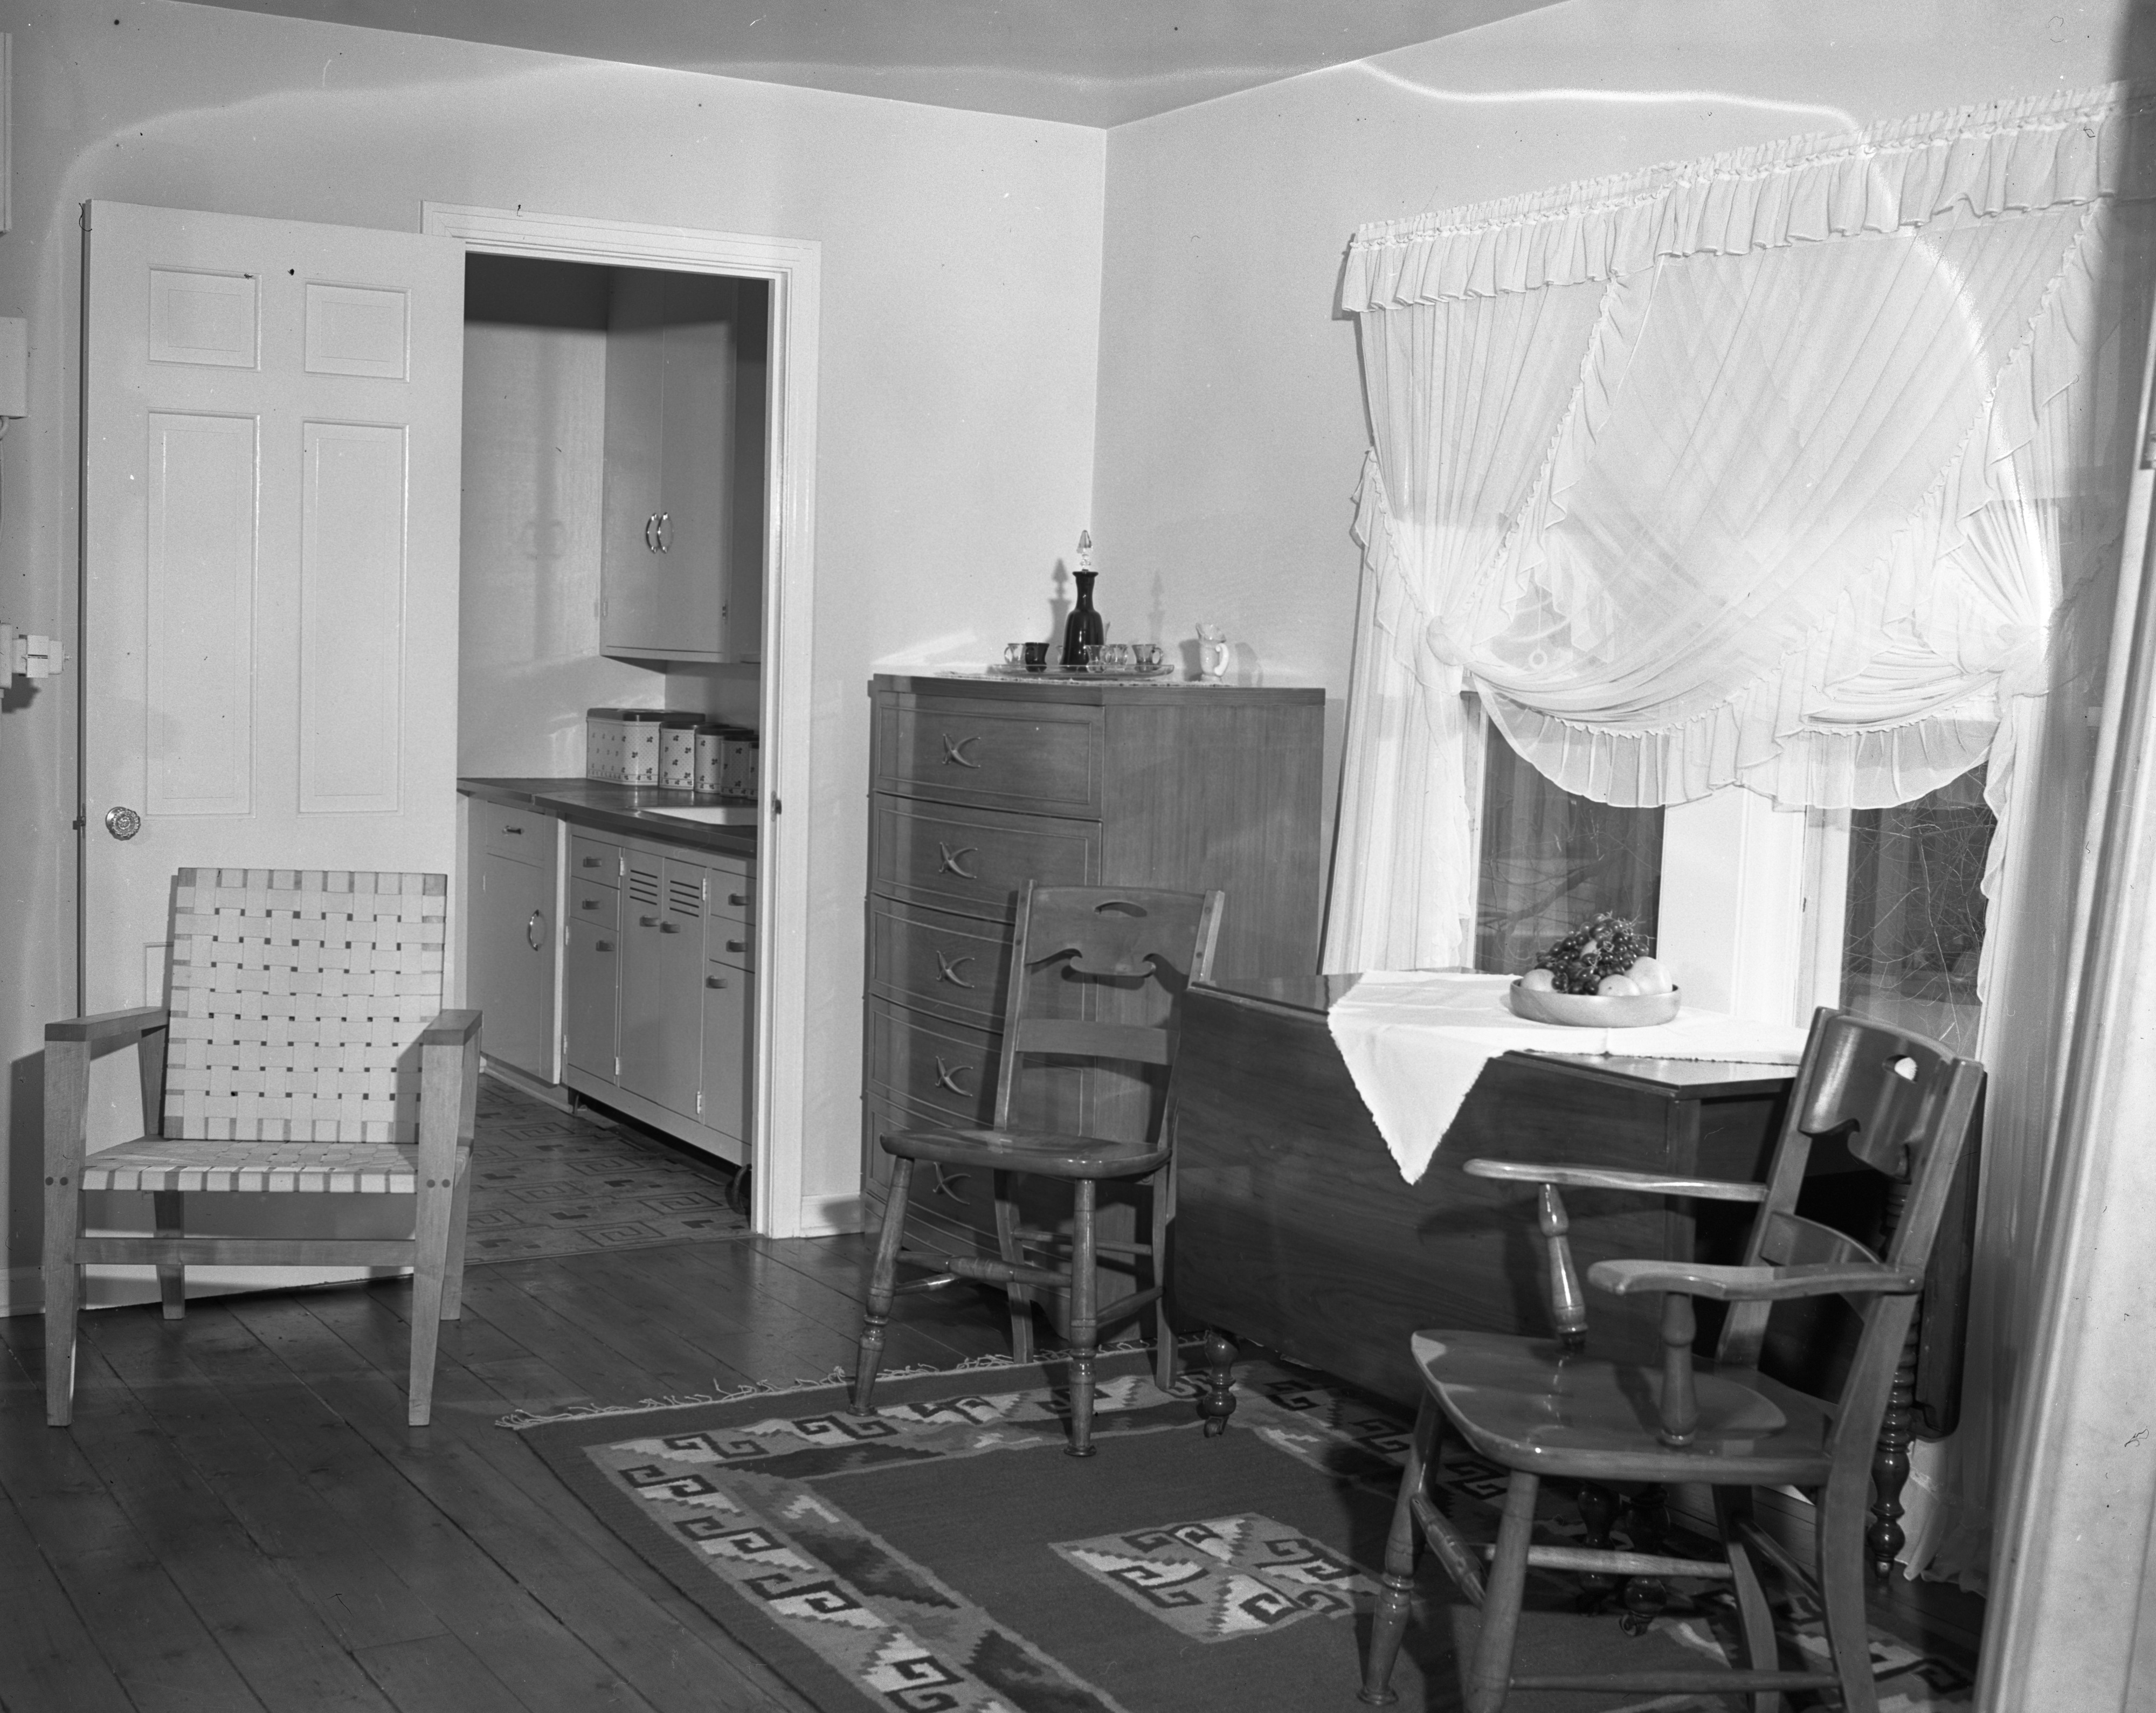 Interior of 5th Ward Voting Building, home for a WWII veteran, November 1946 image